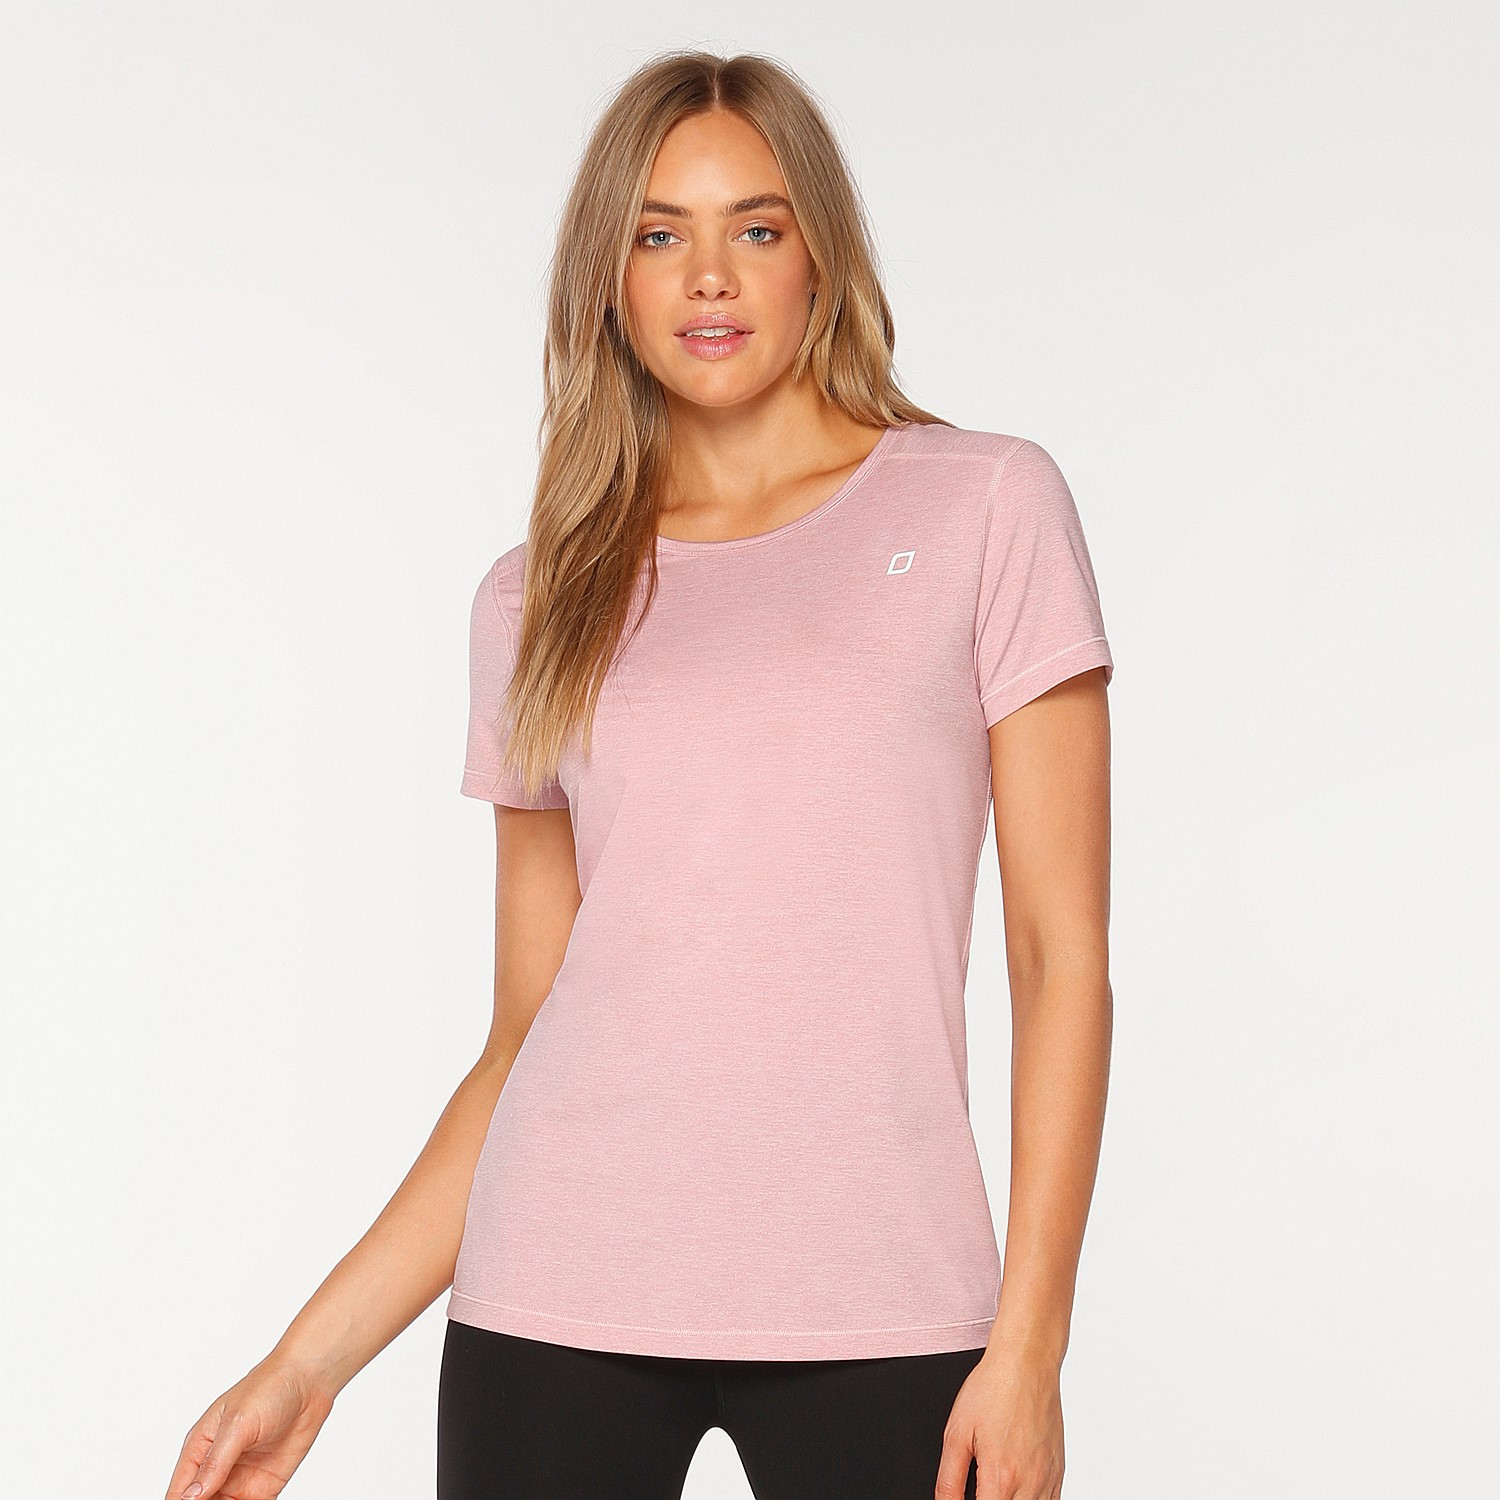 45f3e0ed156b7b New Arrivals | New Arrivals Clothing & Footwear Online | STIRLINGWOMEN -  Move Freely Active Tee